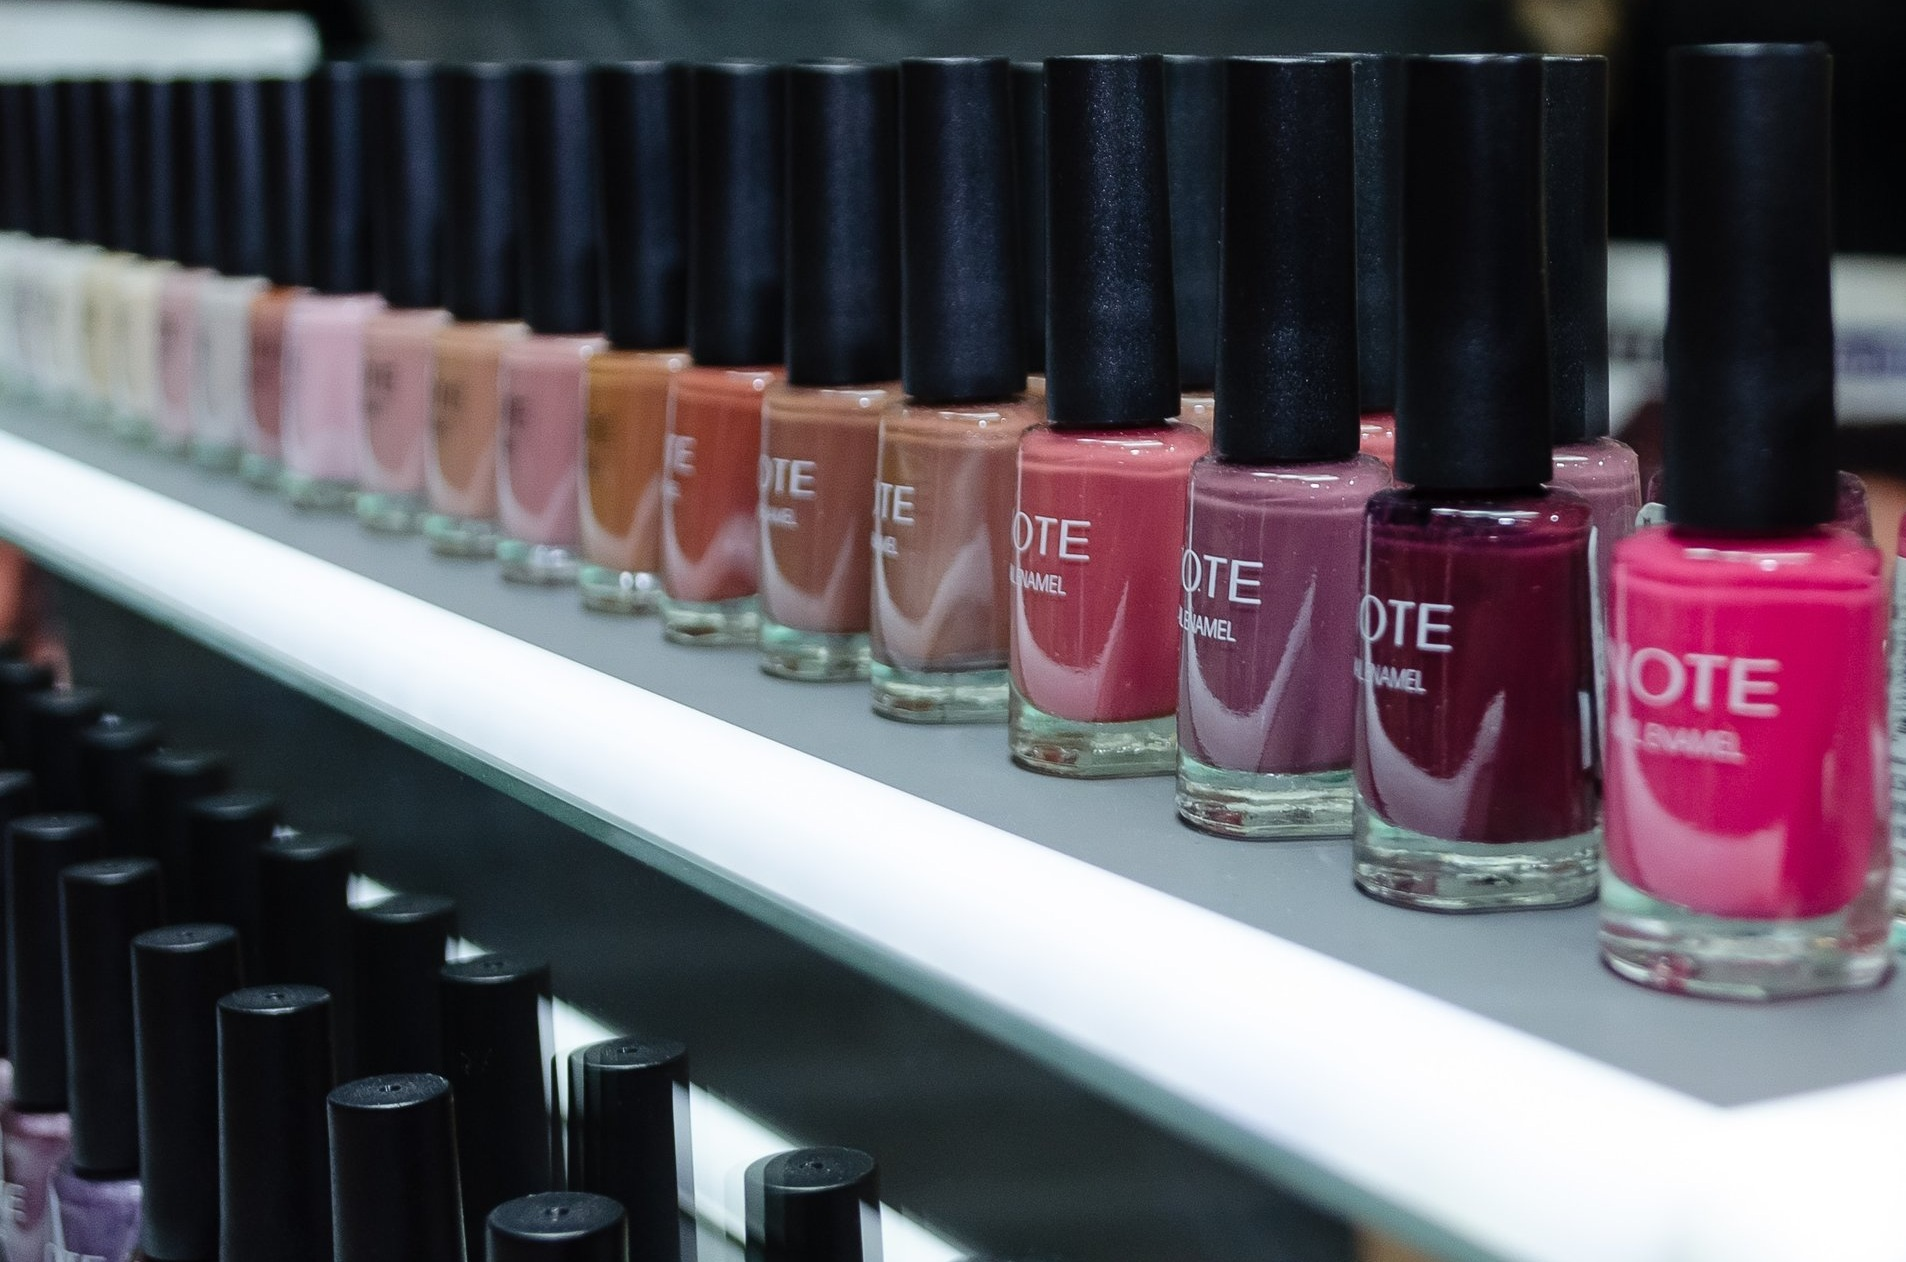 Makes you see all these pretty polishes a bit differently, doesn't it?